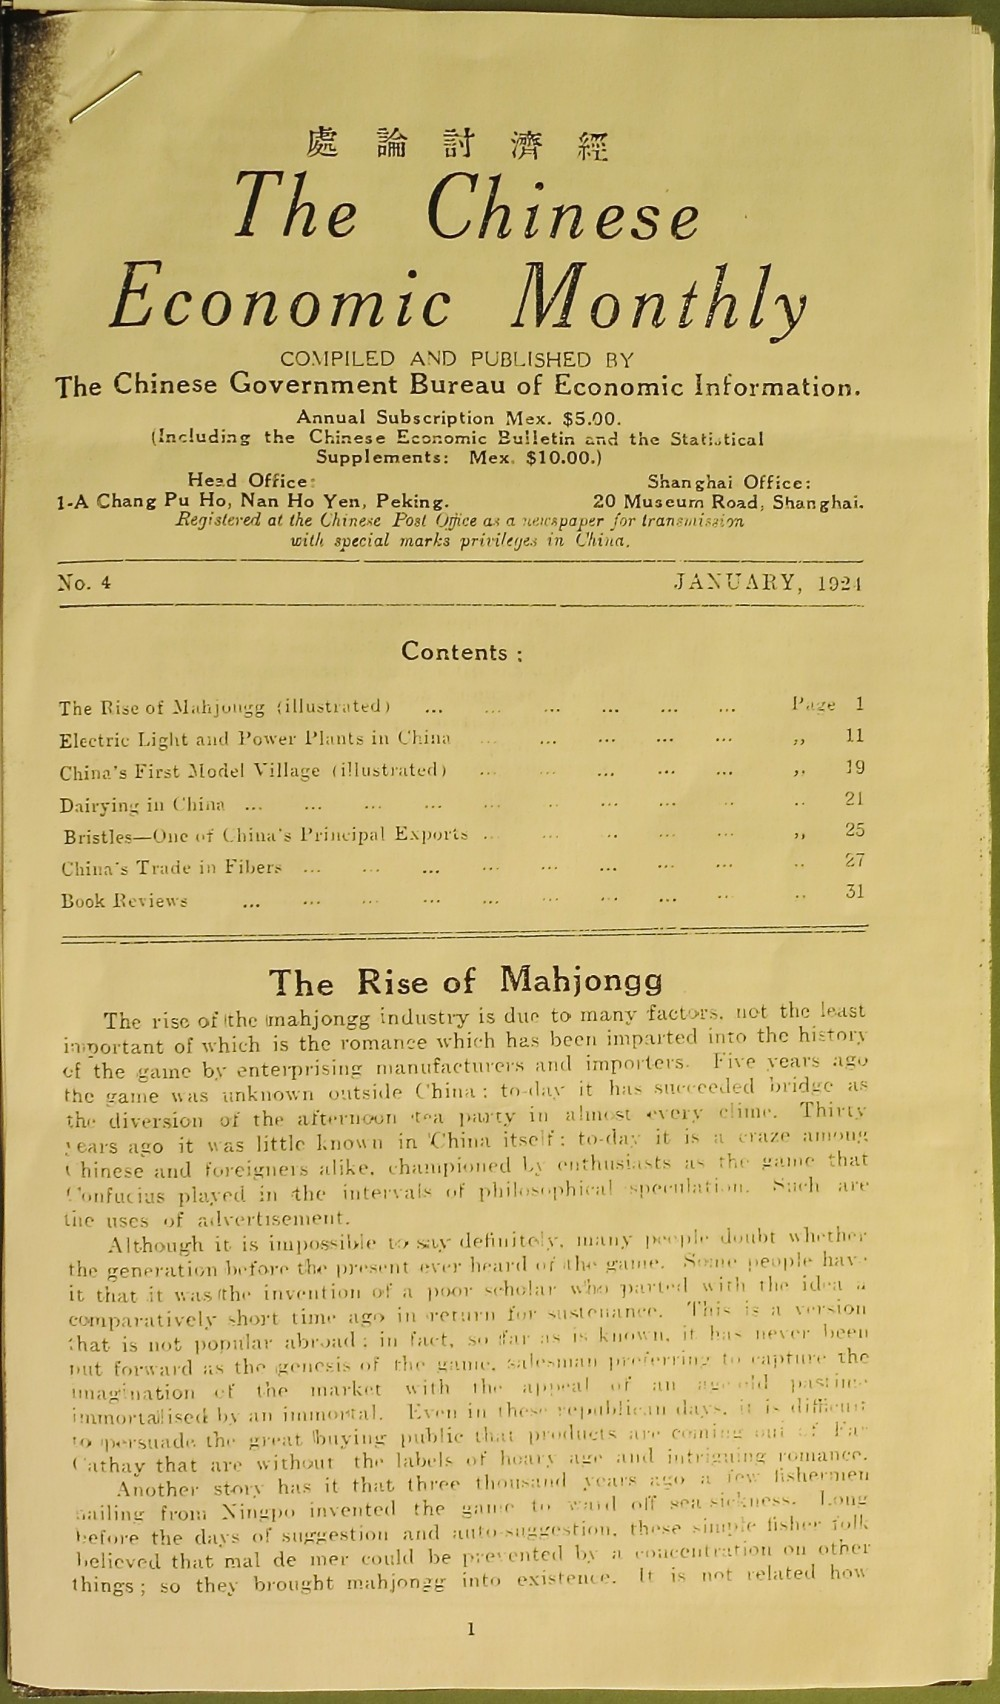 The Chinese Economic Monthly 1924 Mahjongg Article